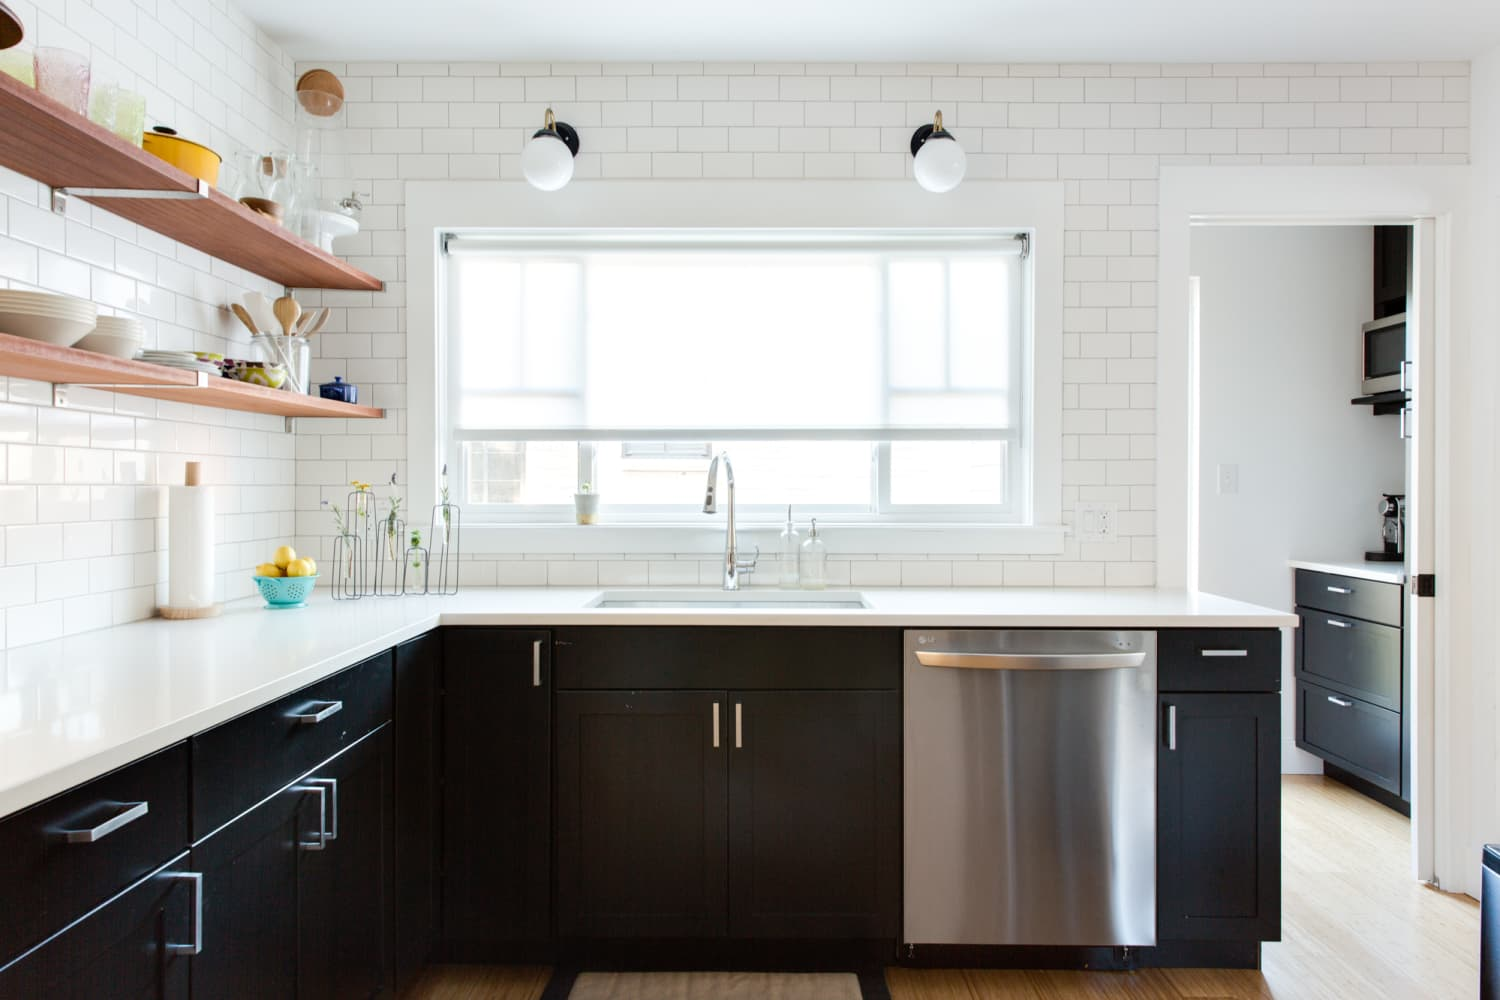 The 9 Deadly Sins of Bad Kitchens, According to Professionals